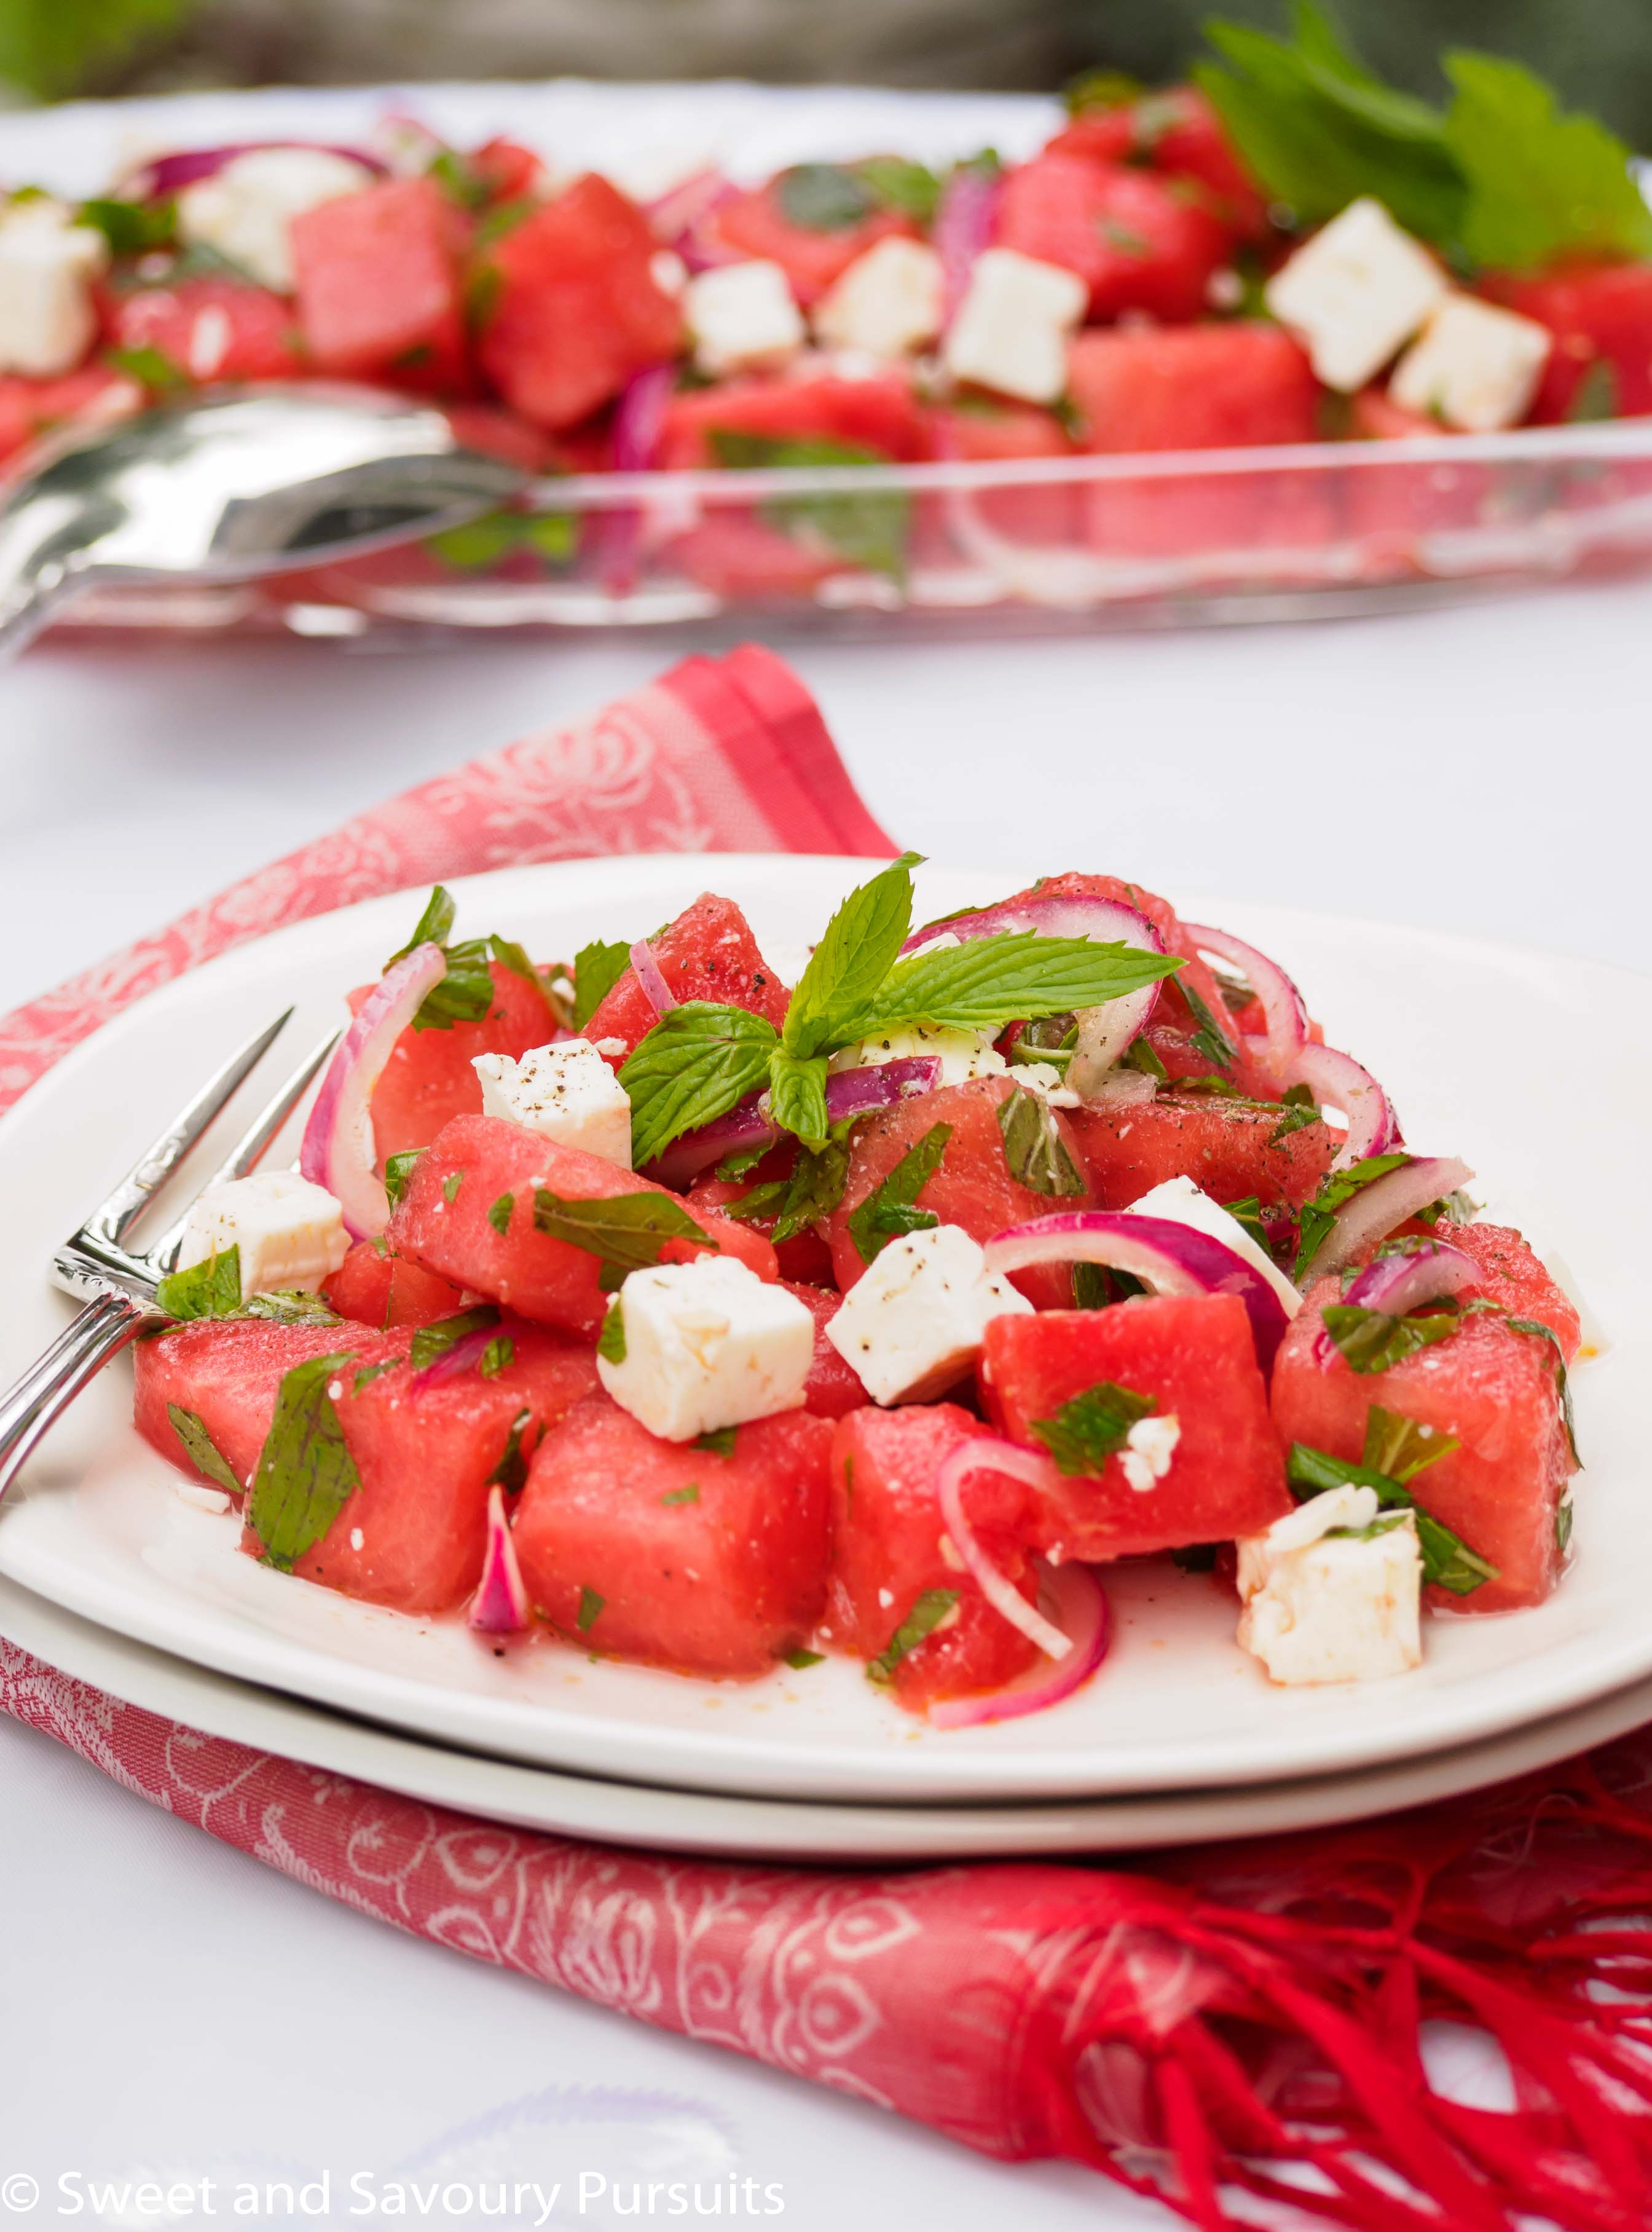 Refreshing and delicious, this Watermelon and Feta Salad is so ...